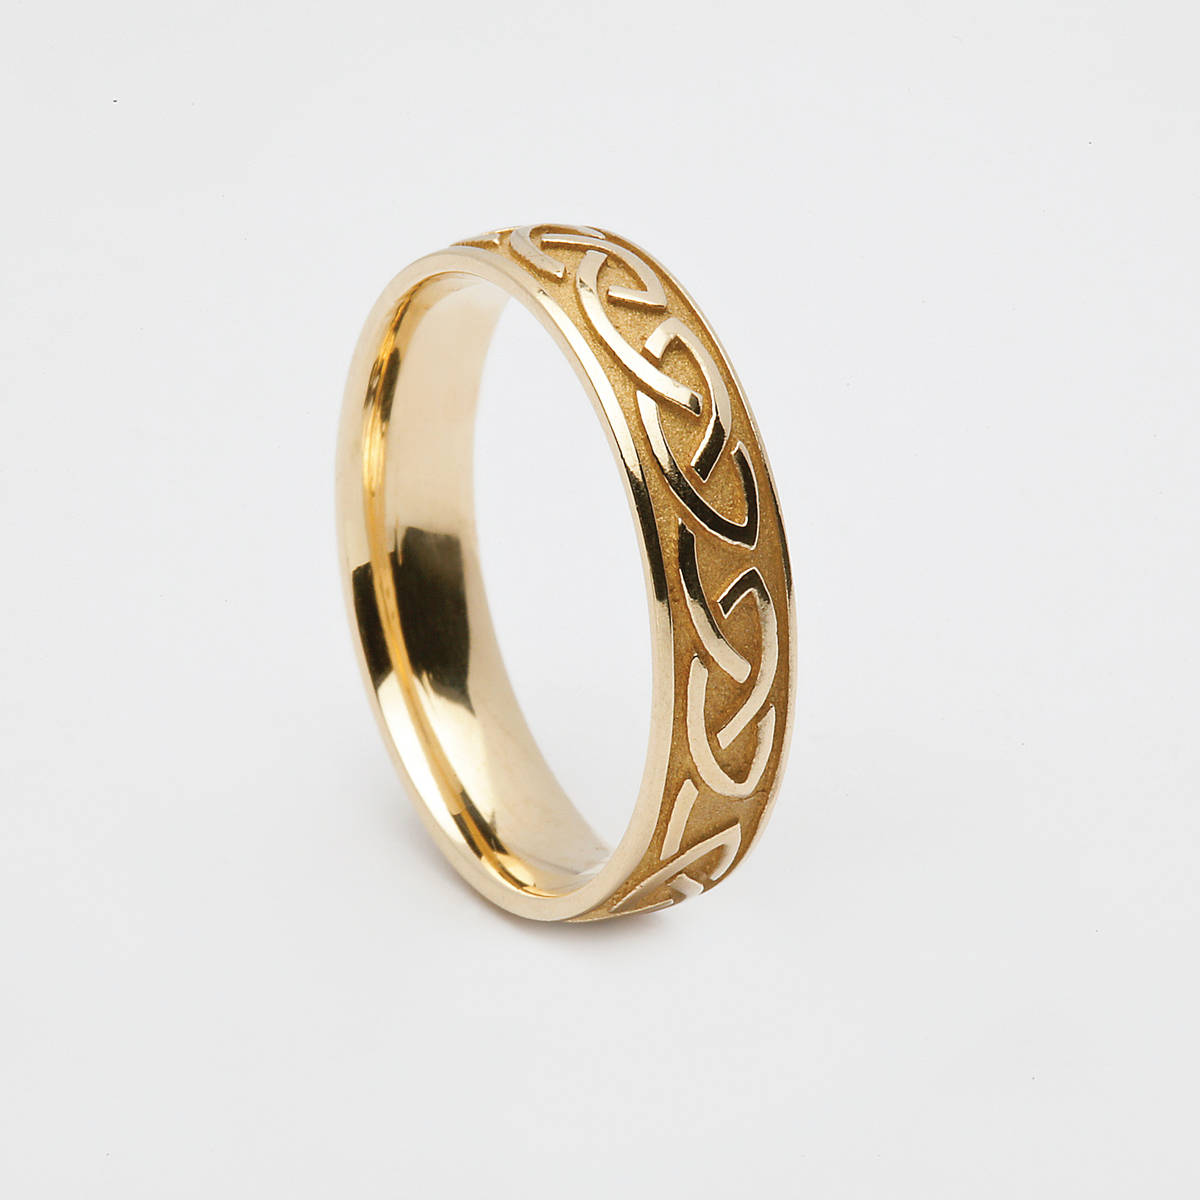 14 carat yellow gold man's Celtic love knot ring